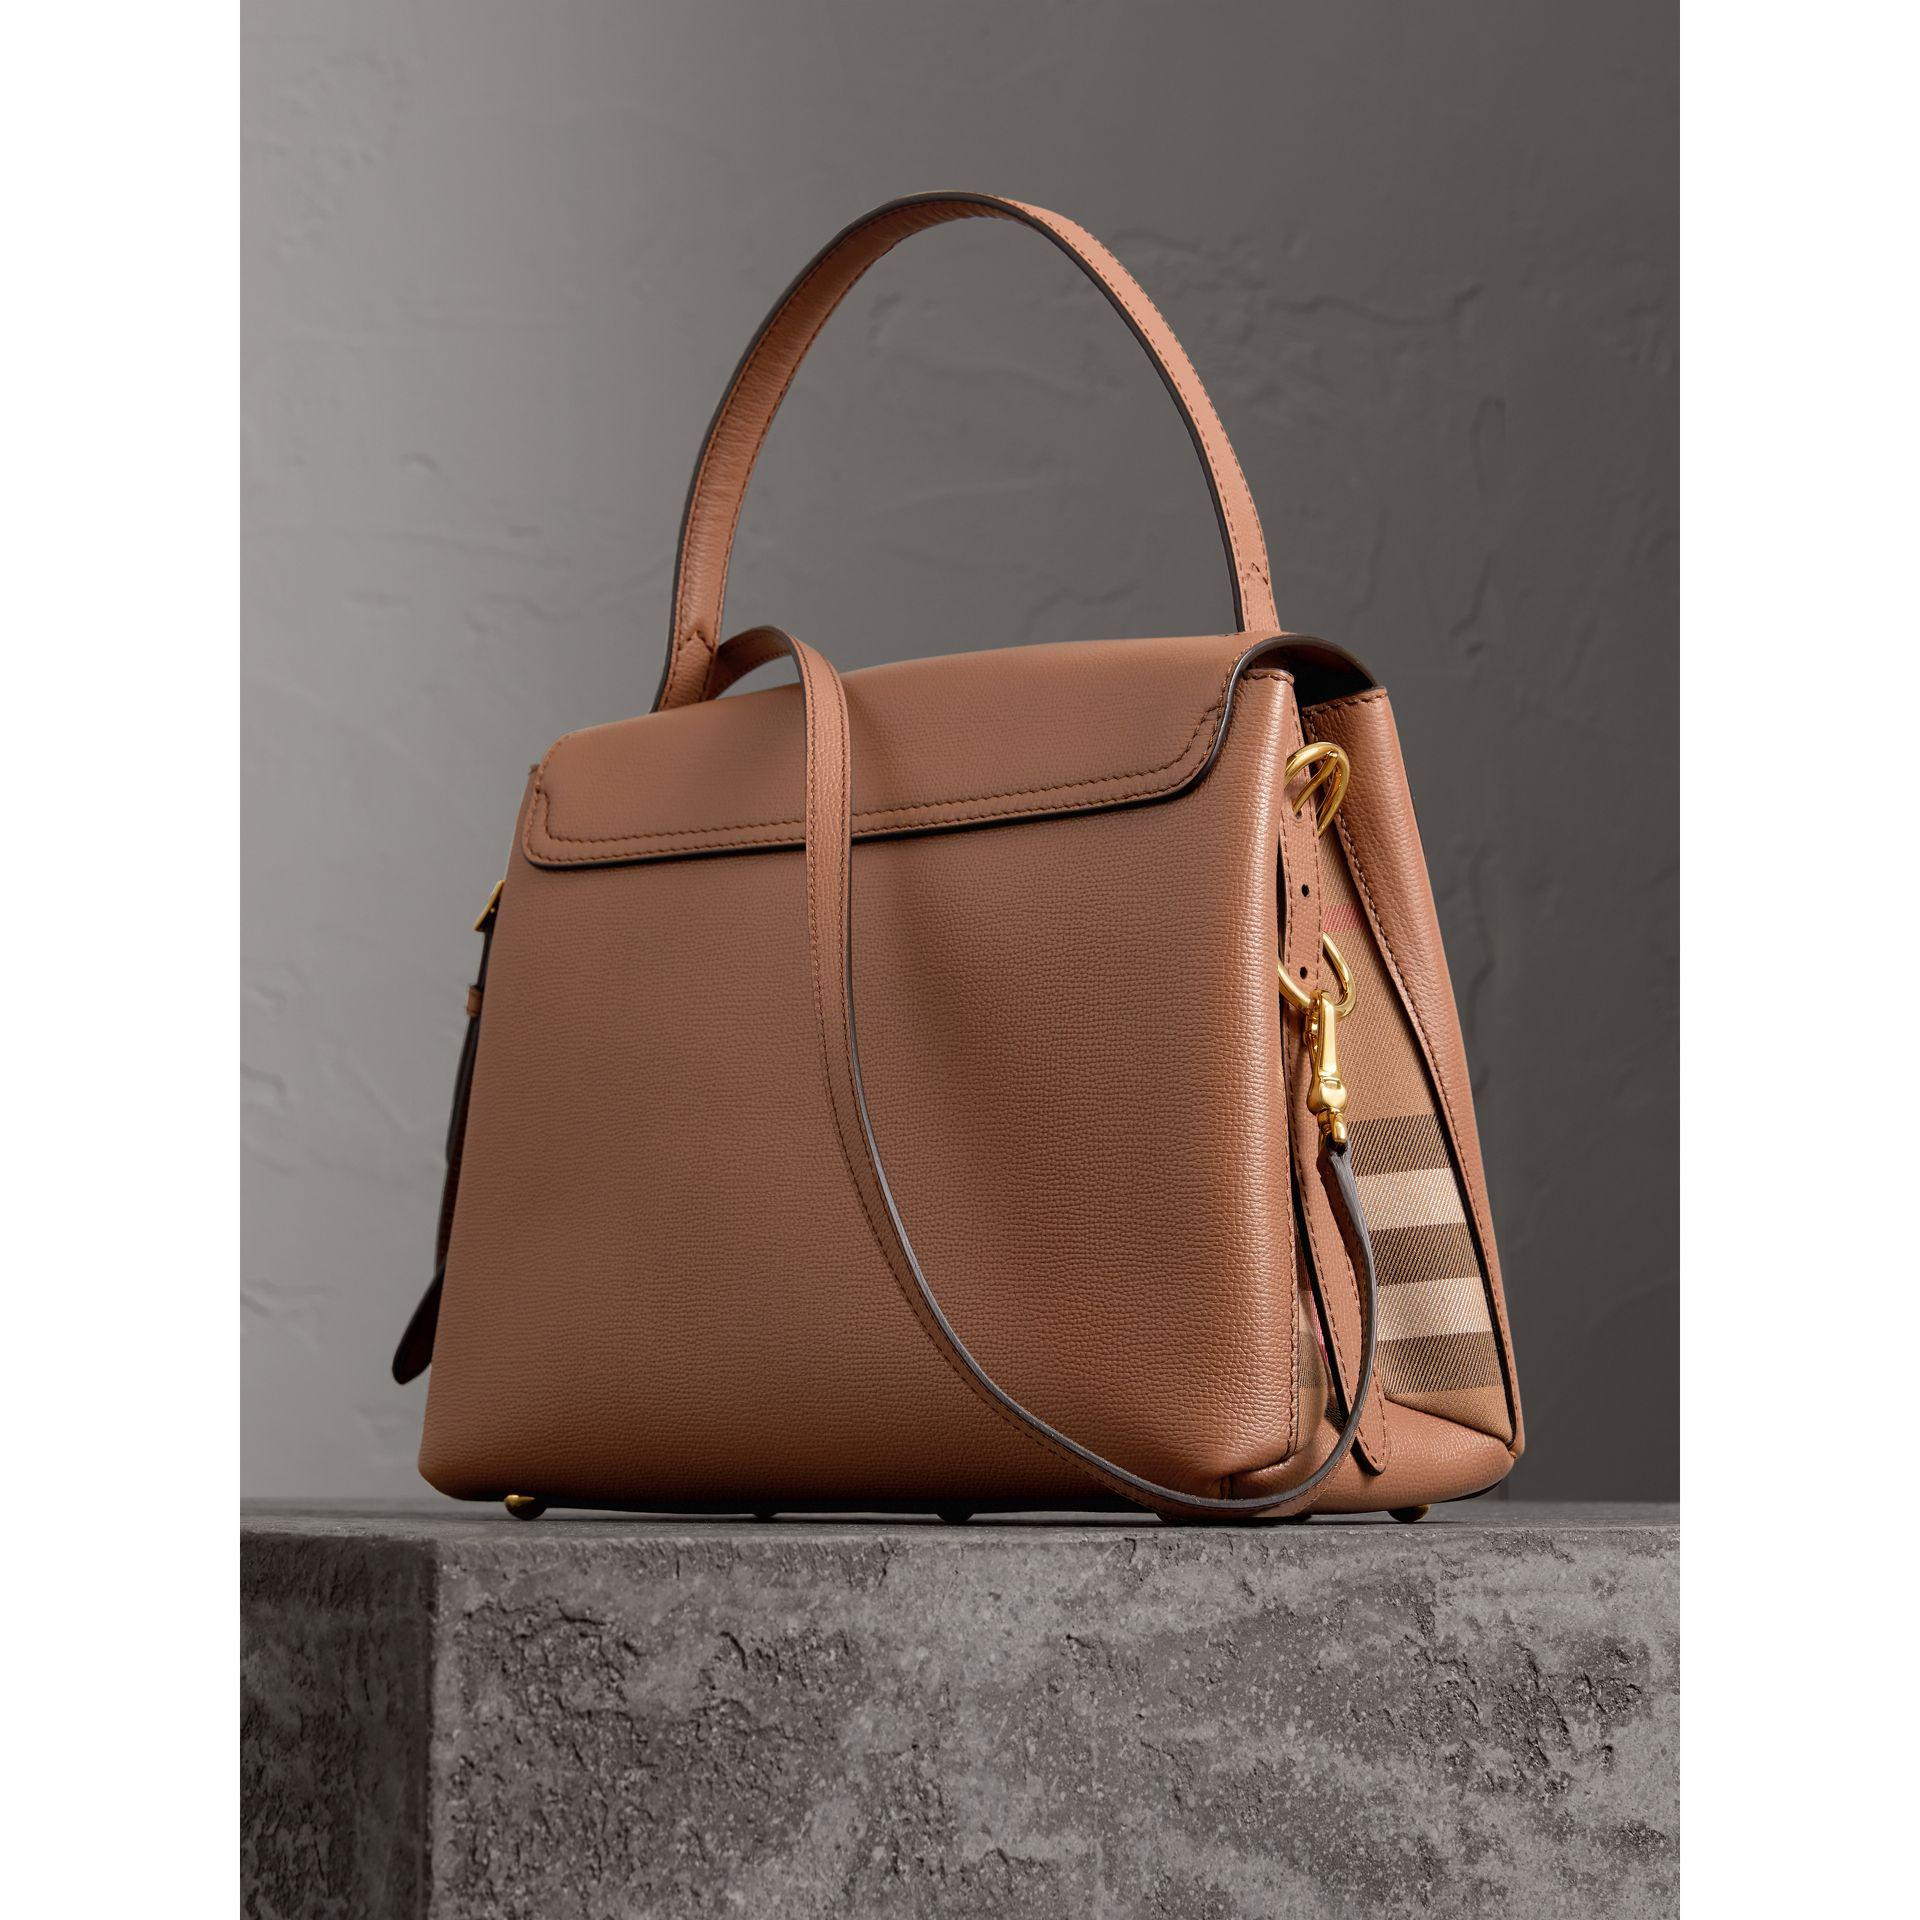 7d8a30c737c3 Burberry Small Grainy Leather And House Check Tote Bag